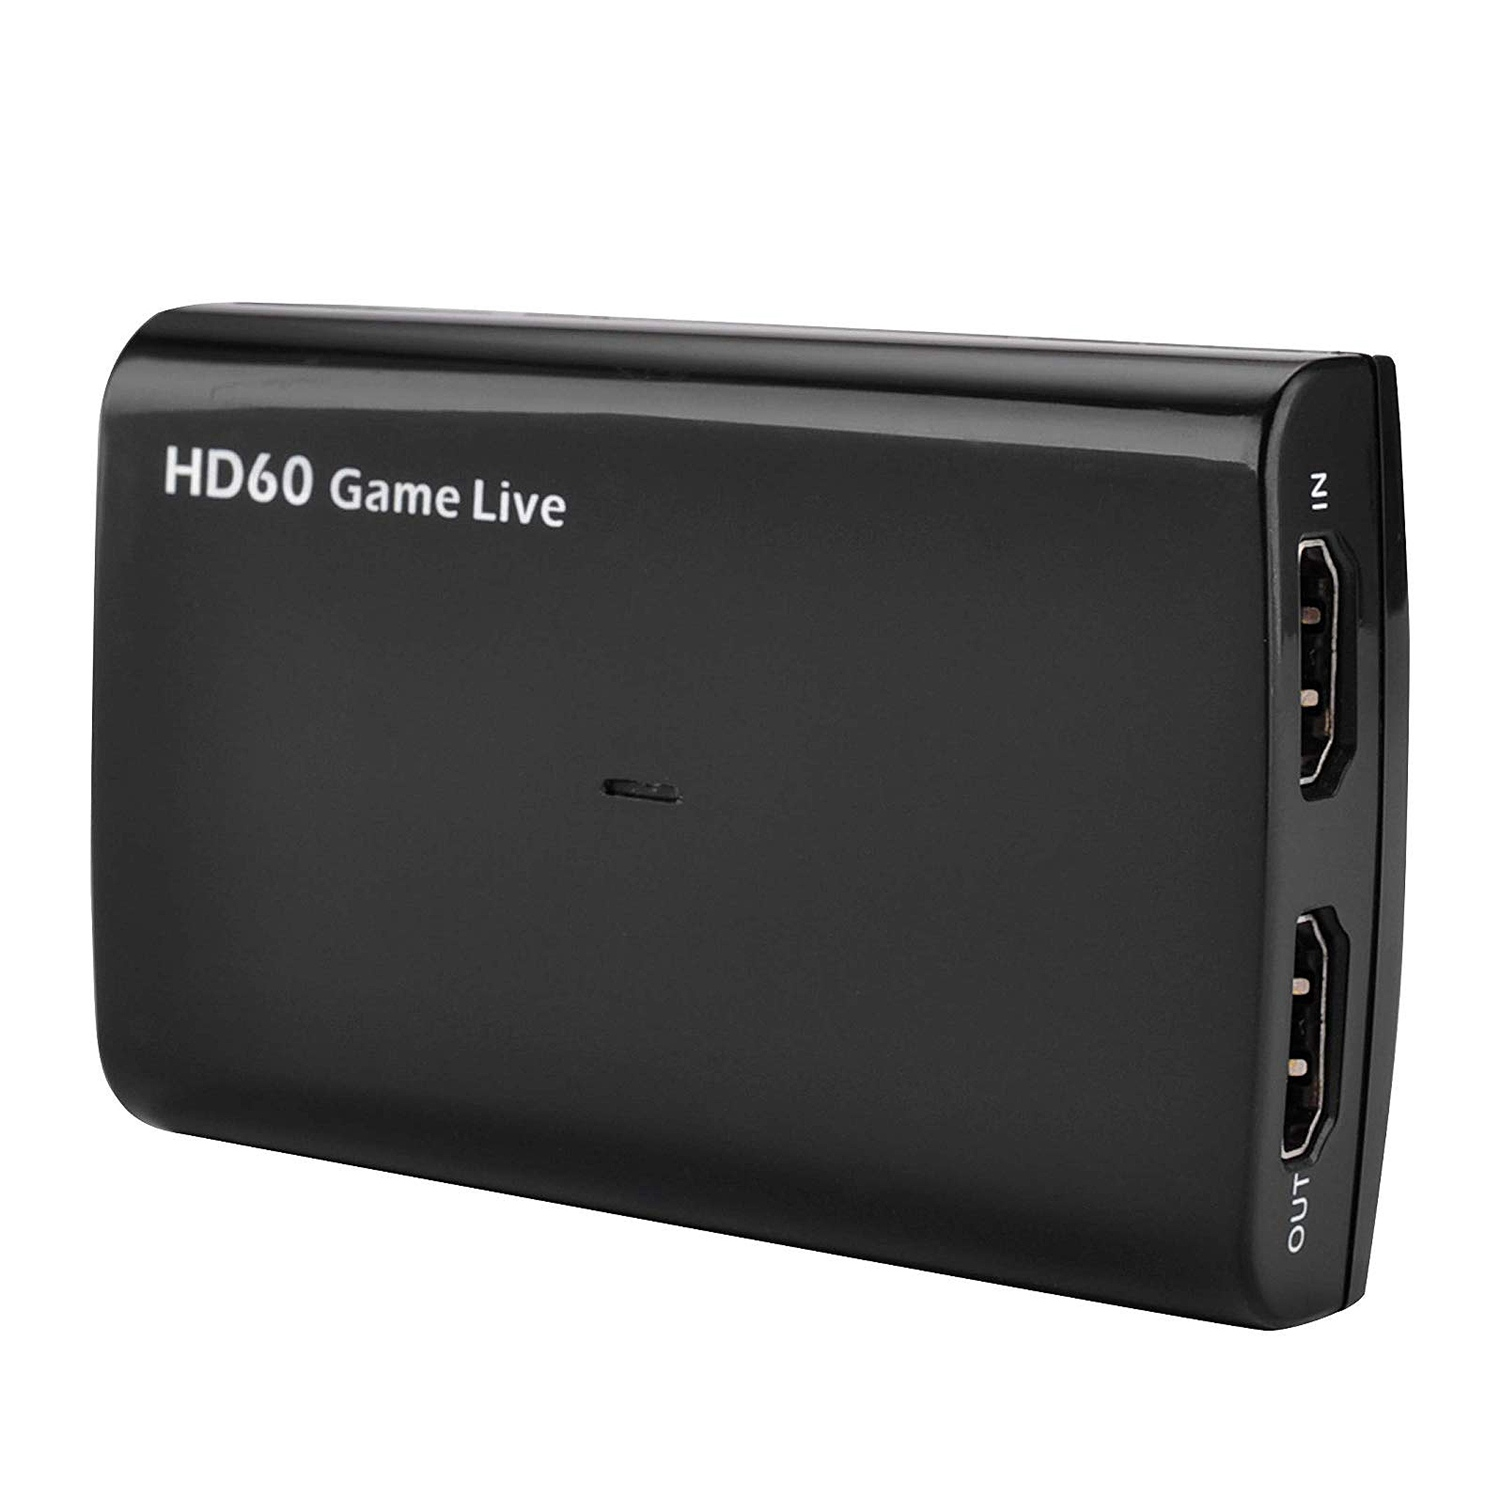 4K Hdmi Input And Bypass Usb3.0 Uvc Game Capture With Microphone Input, Record Up To 1080P 60Fps Hdmi To Uvc Video Capture Car4K Hdmi Input And Bypass Usb3.0 Uvc Game Capture With Microphone Input, Record Up To 1080P 60Fps Hdmi To Uvc Video Capture Car